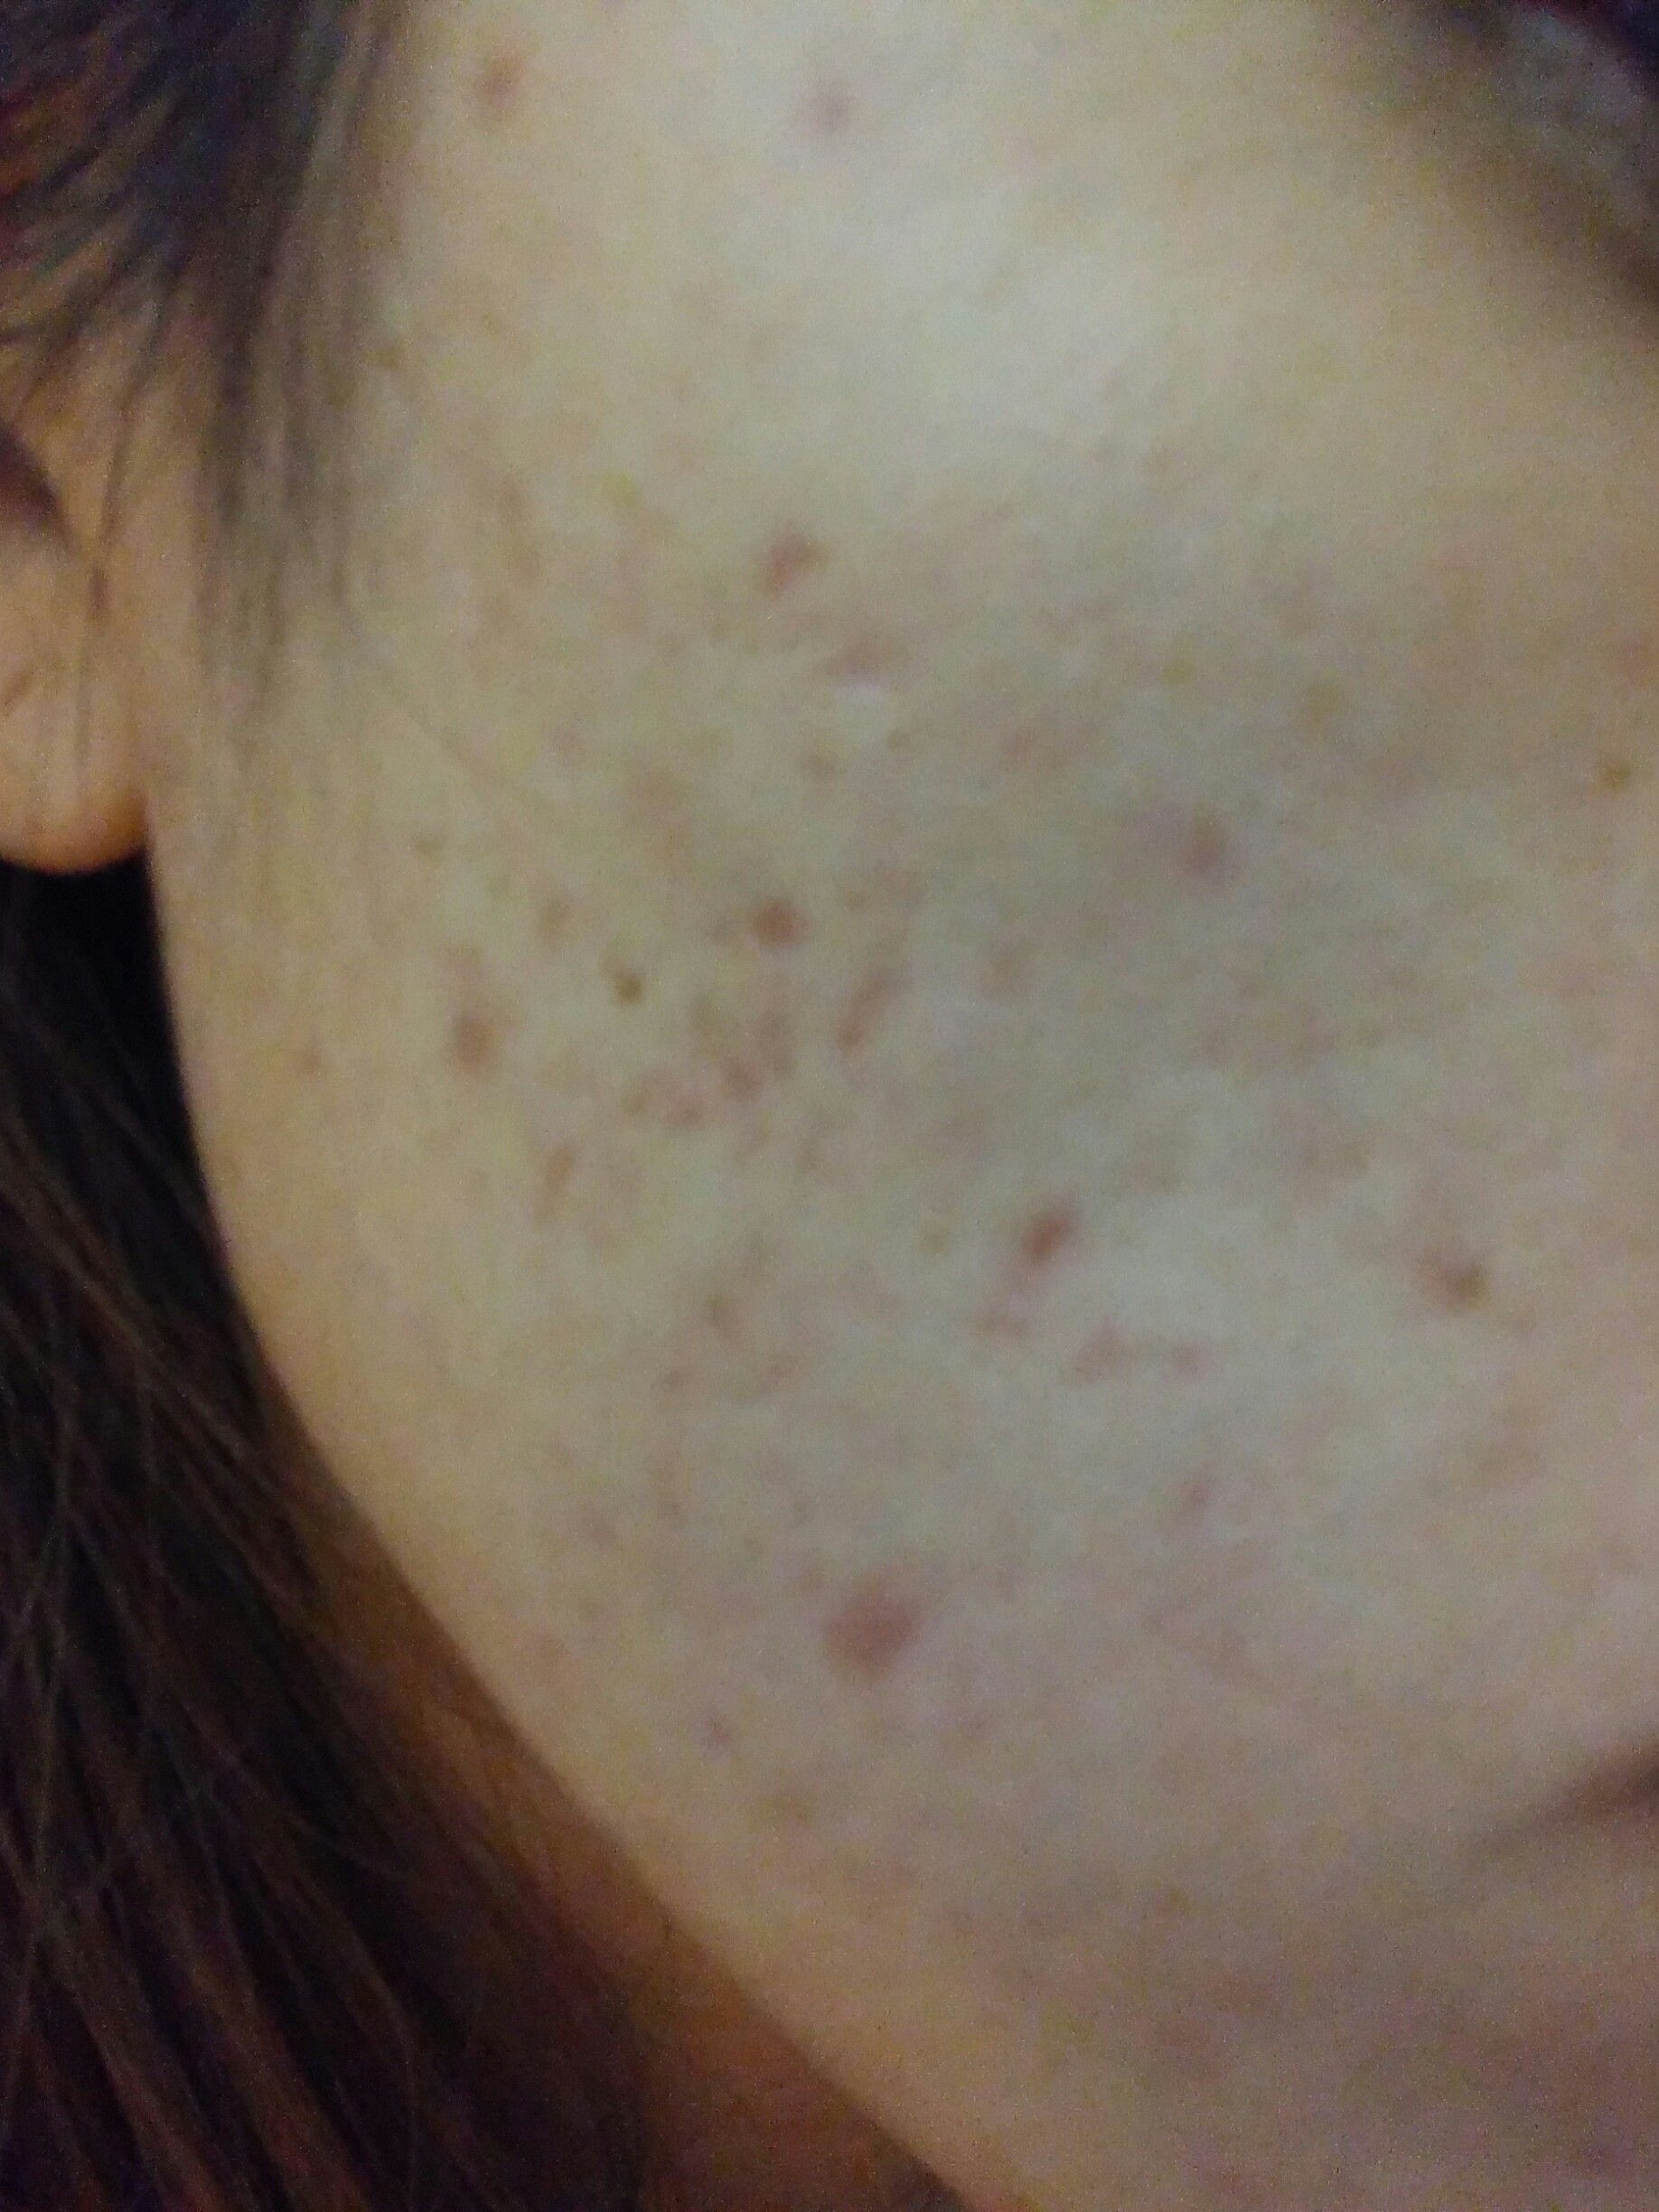 Help with this scars and discoloration - Scar treatments ...